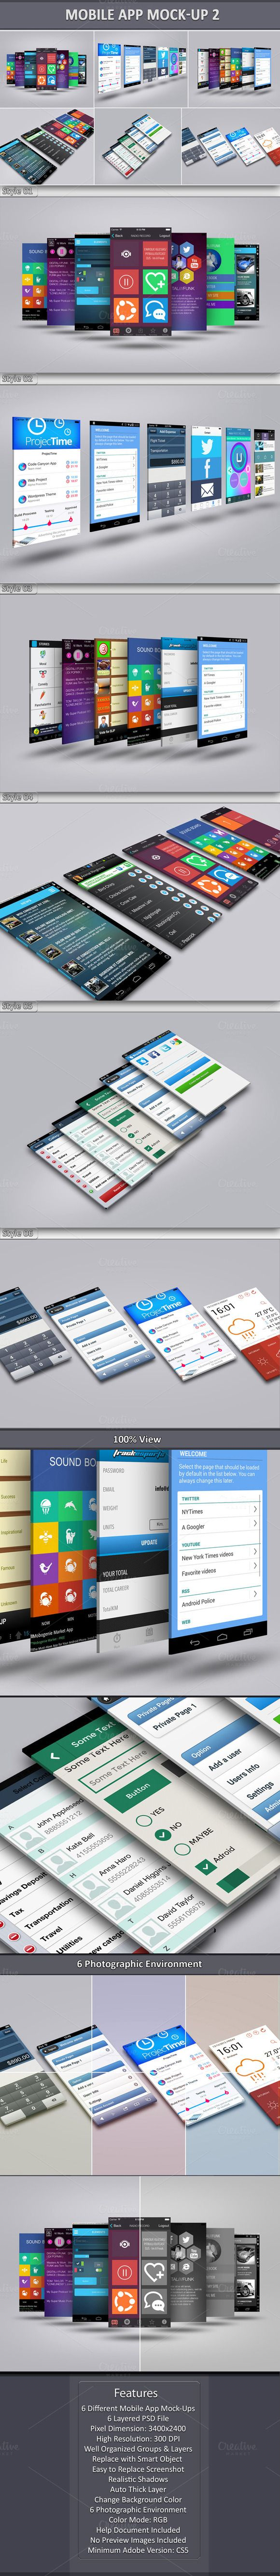 Mobile App Mock-Up 2 by Graphicsworld125 on Creative Market